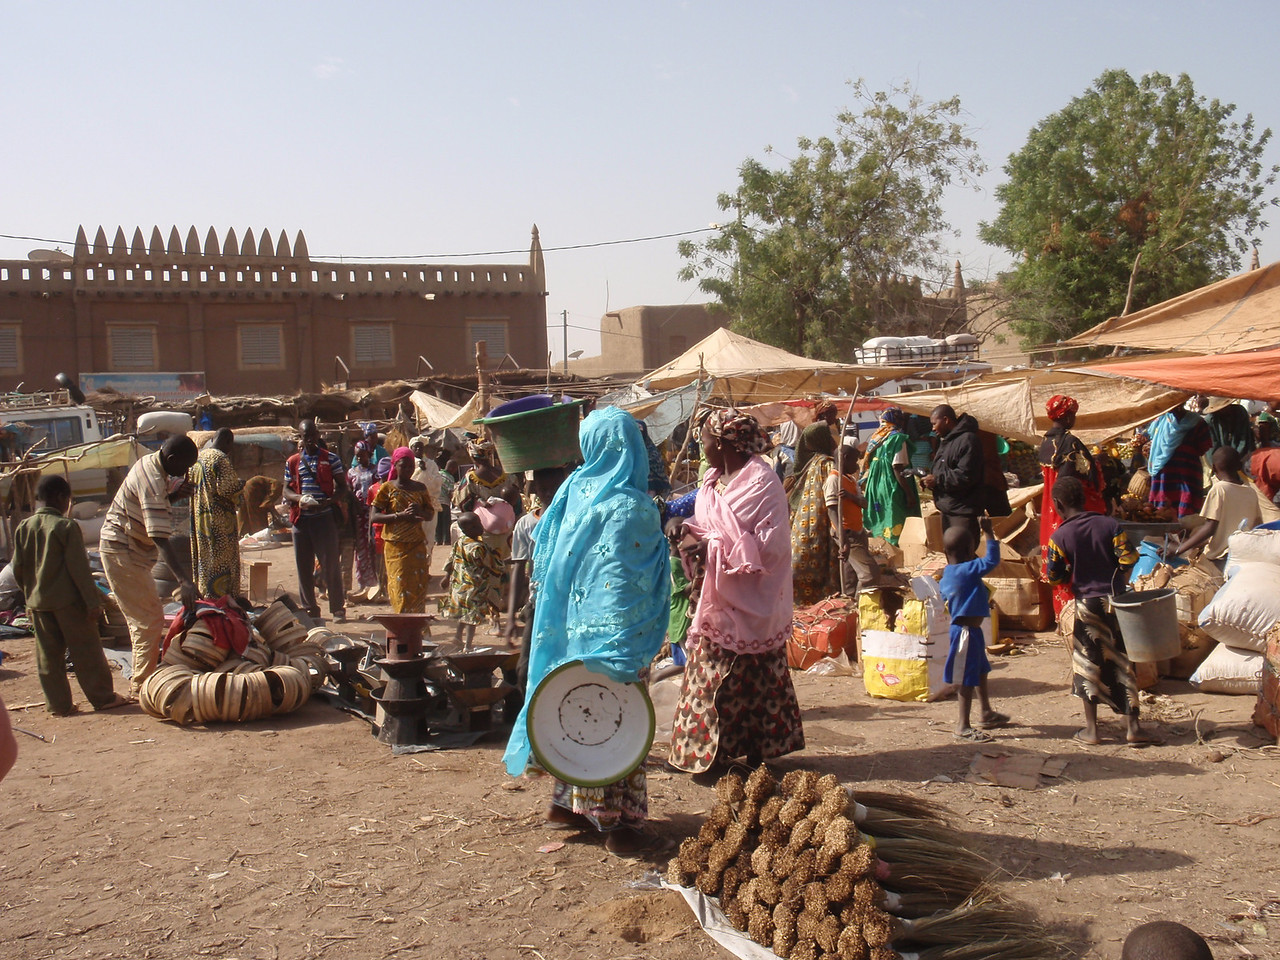 158_Djenne Old Town  The Bustling and Colourful Monday Market